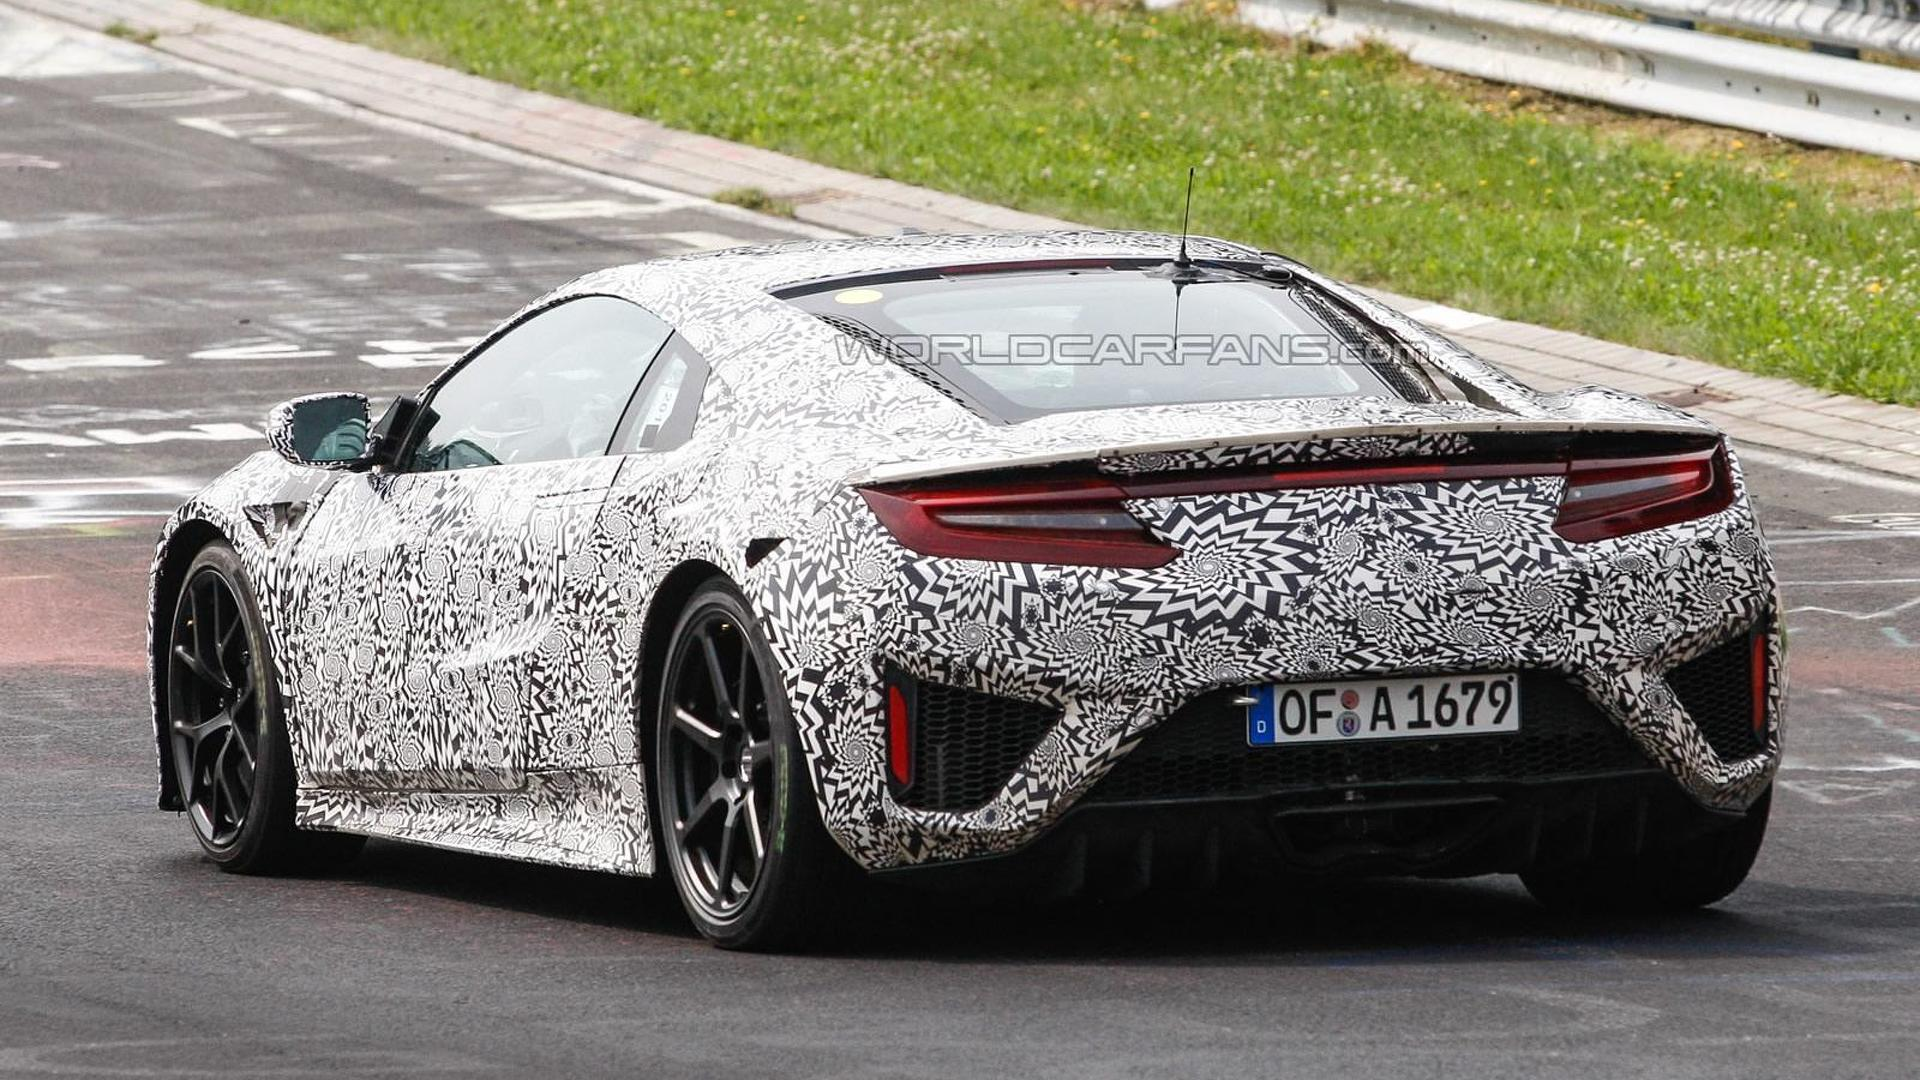 2015 Honda Acura Nsx Spied At The Nurburgring Hiding Production Body